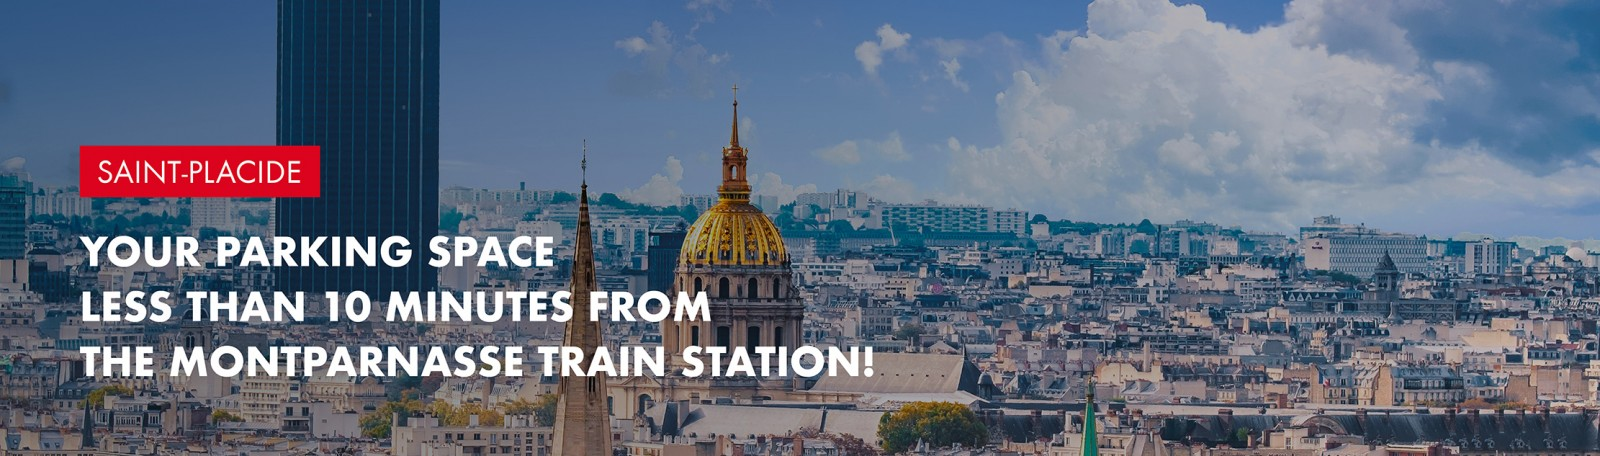 Book your parking at Montparnasse train station